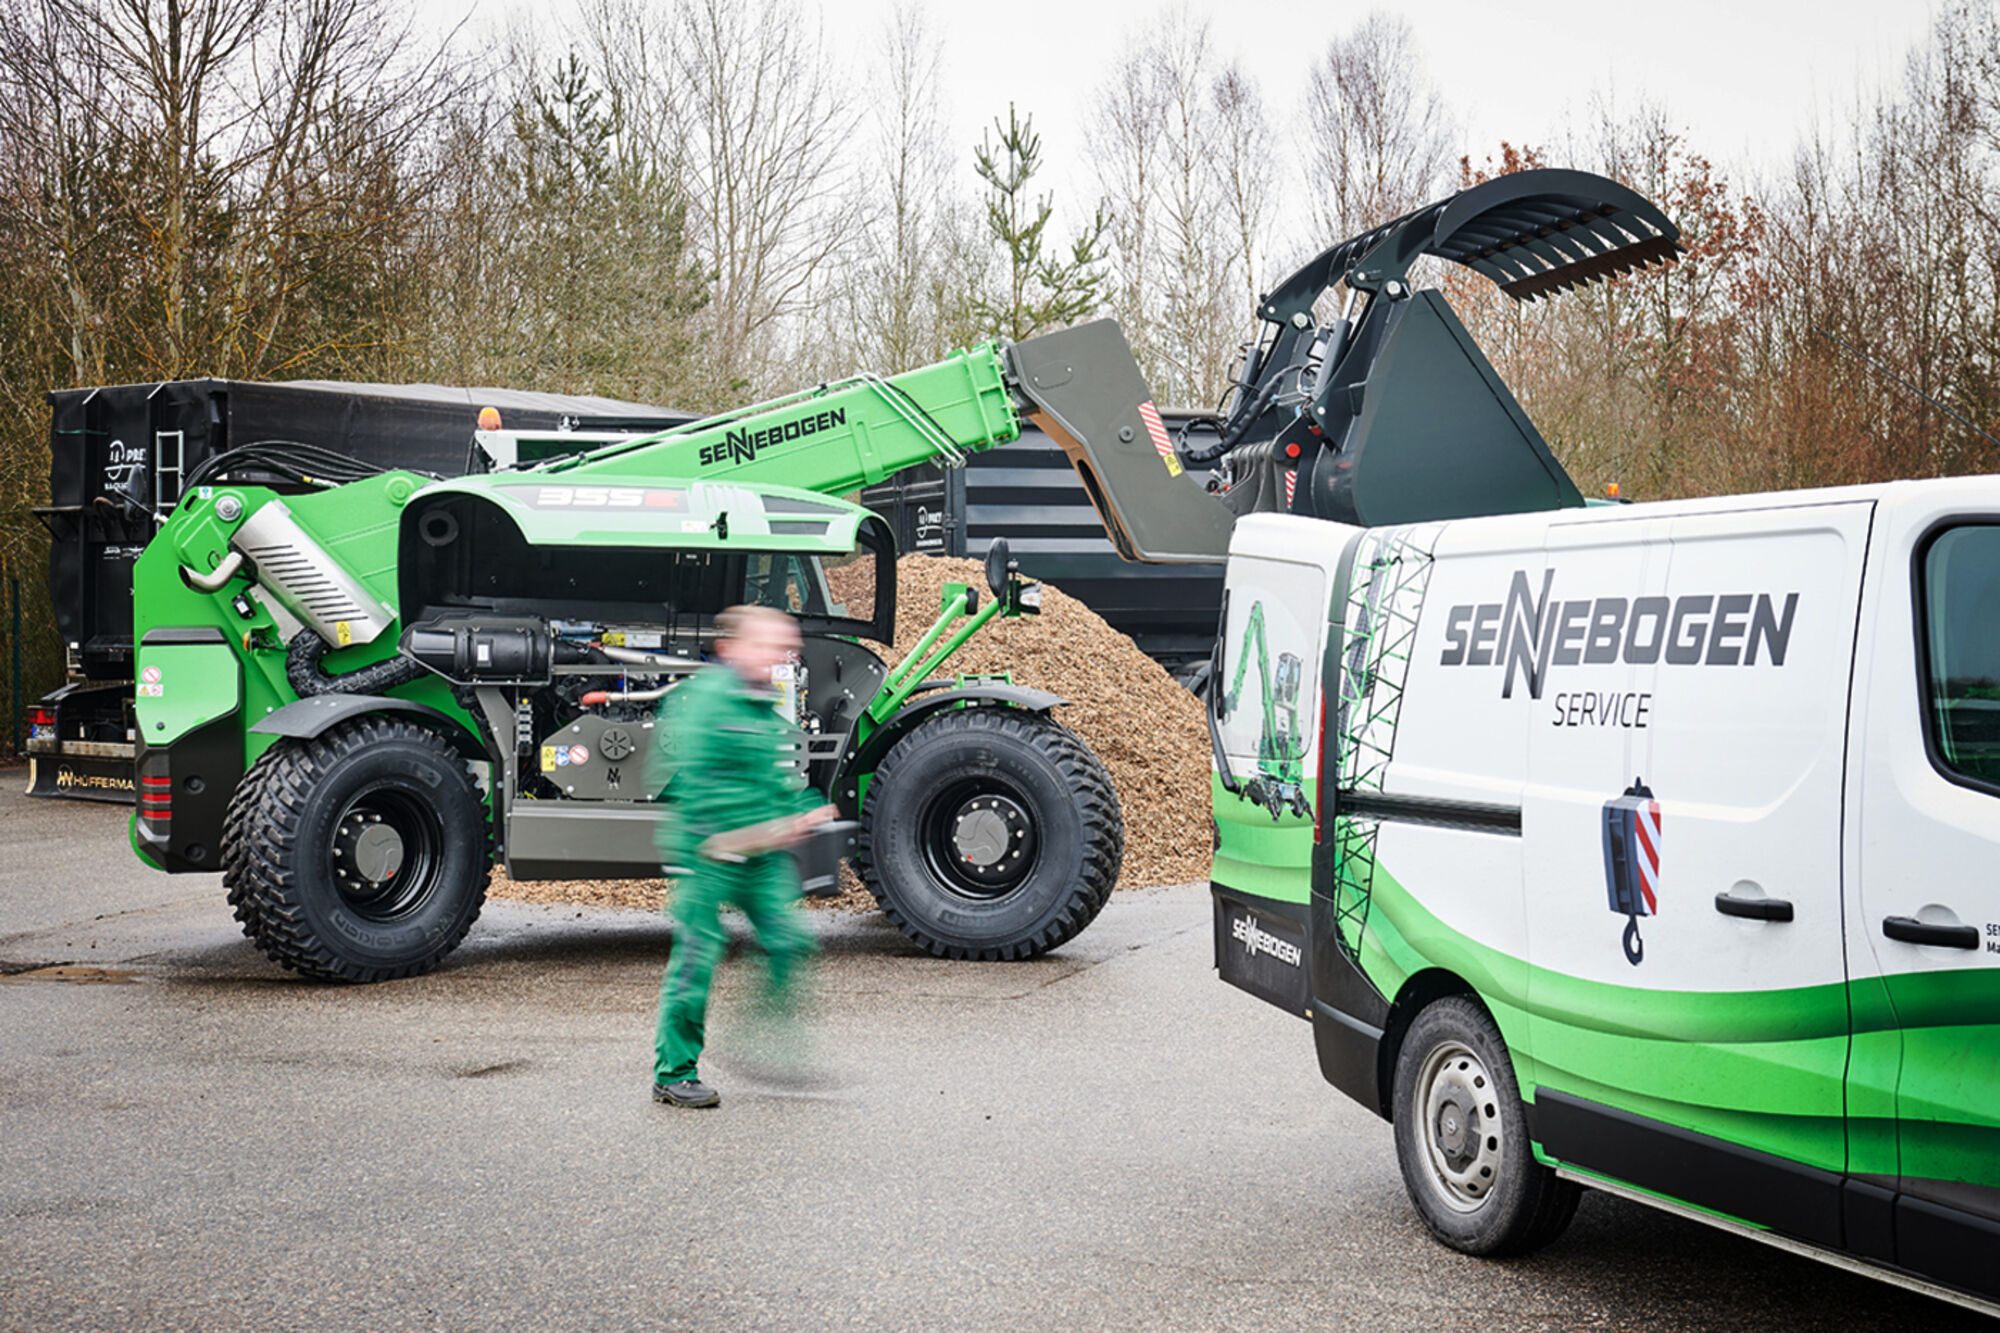 SENNEBOGEN after sales / service / customer service on 355 E telehandler